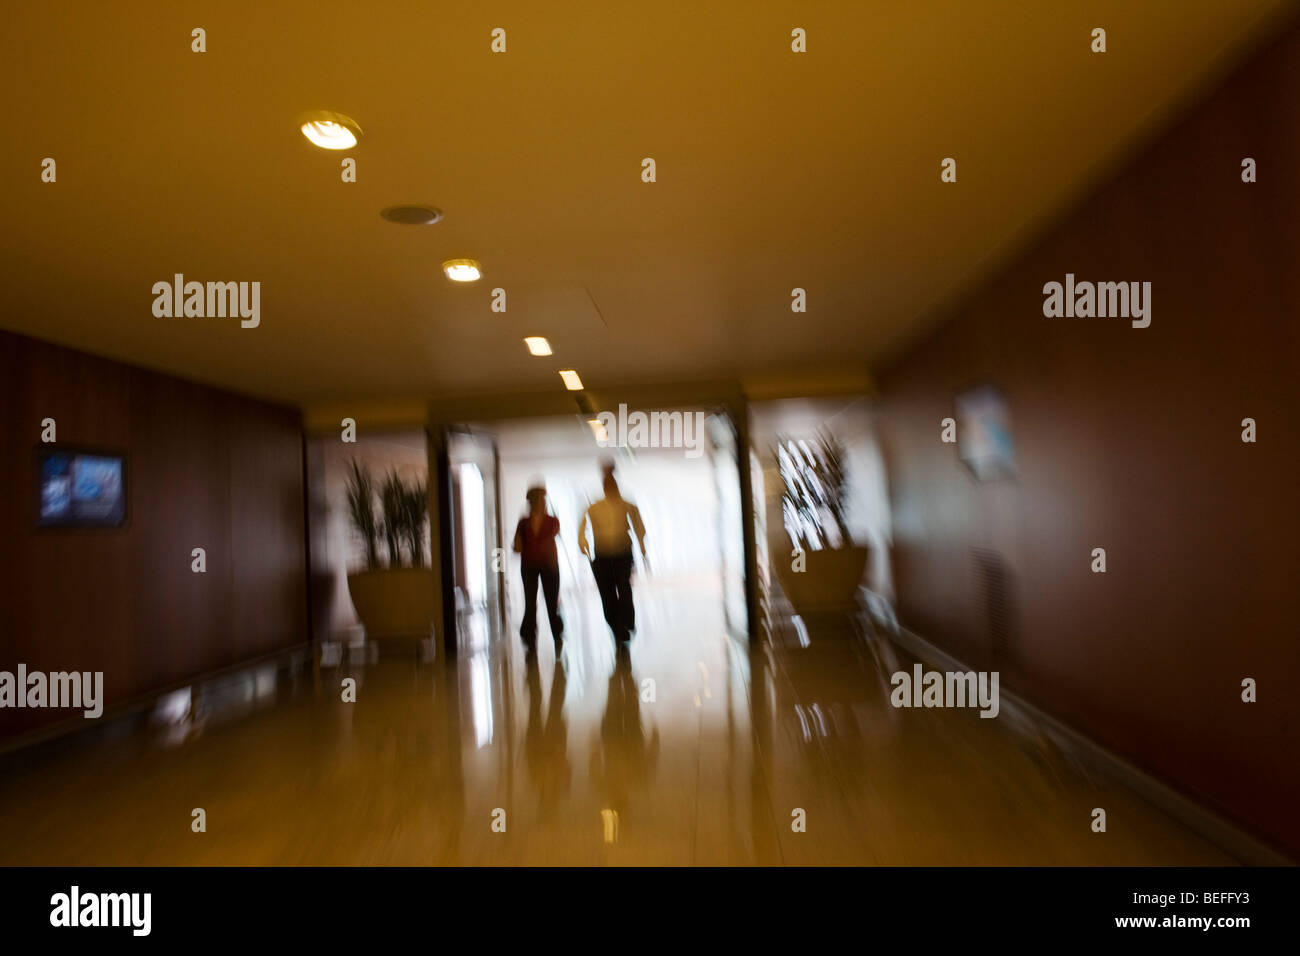 Two hotel guests head for exit in connecting corridor in Sofitel at Heathrow's terminal 5 hotel. - Stock Image